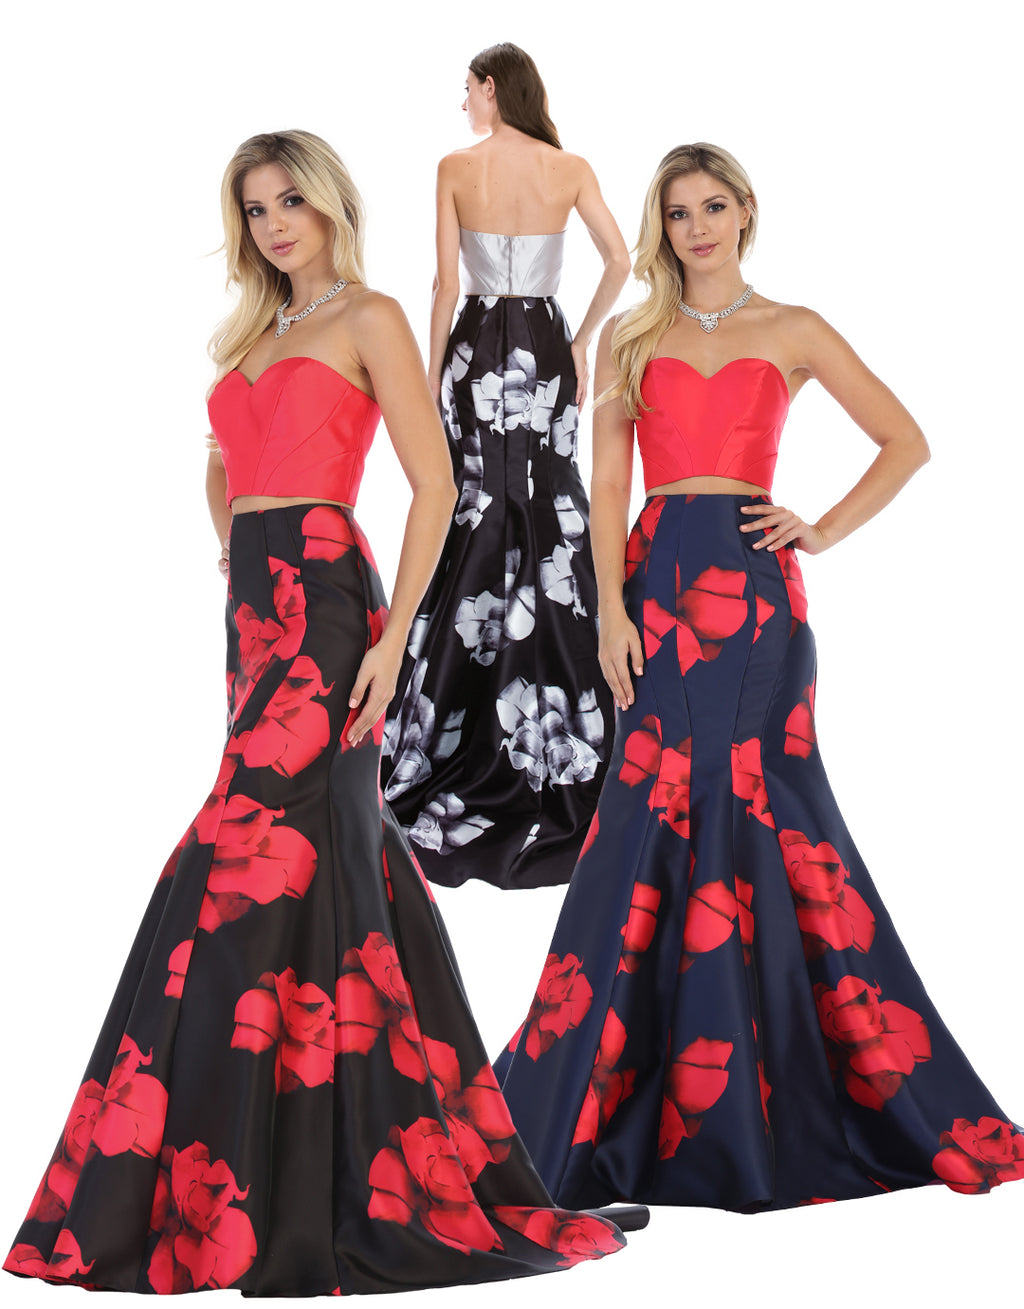 Satin Off Shoulder Two Piece Dress With Floral Print | Norma Reed